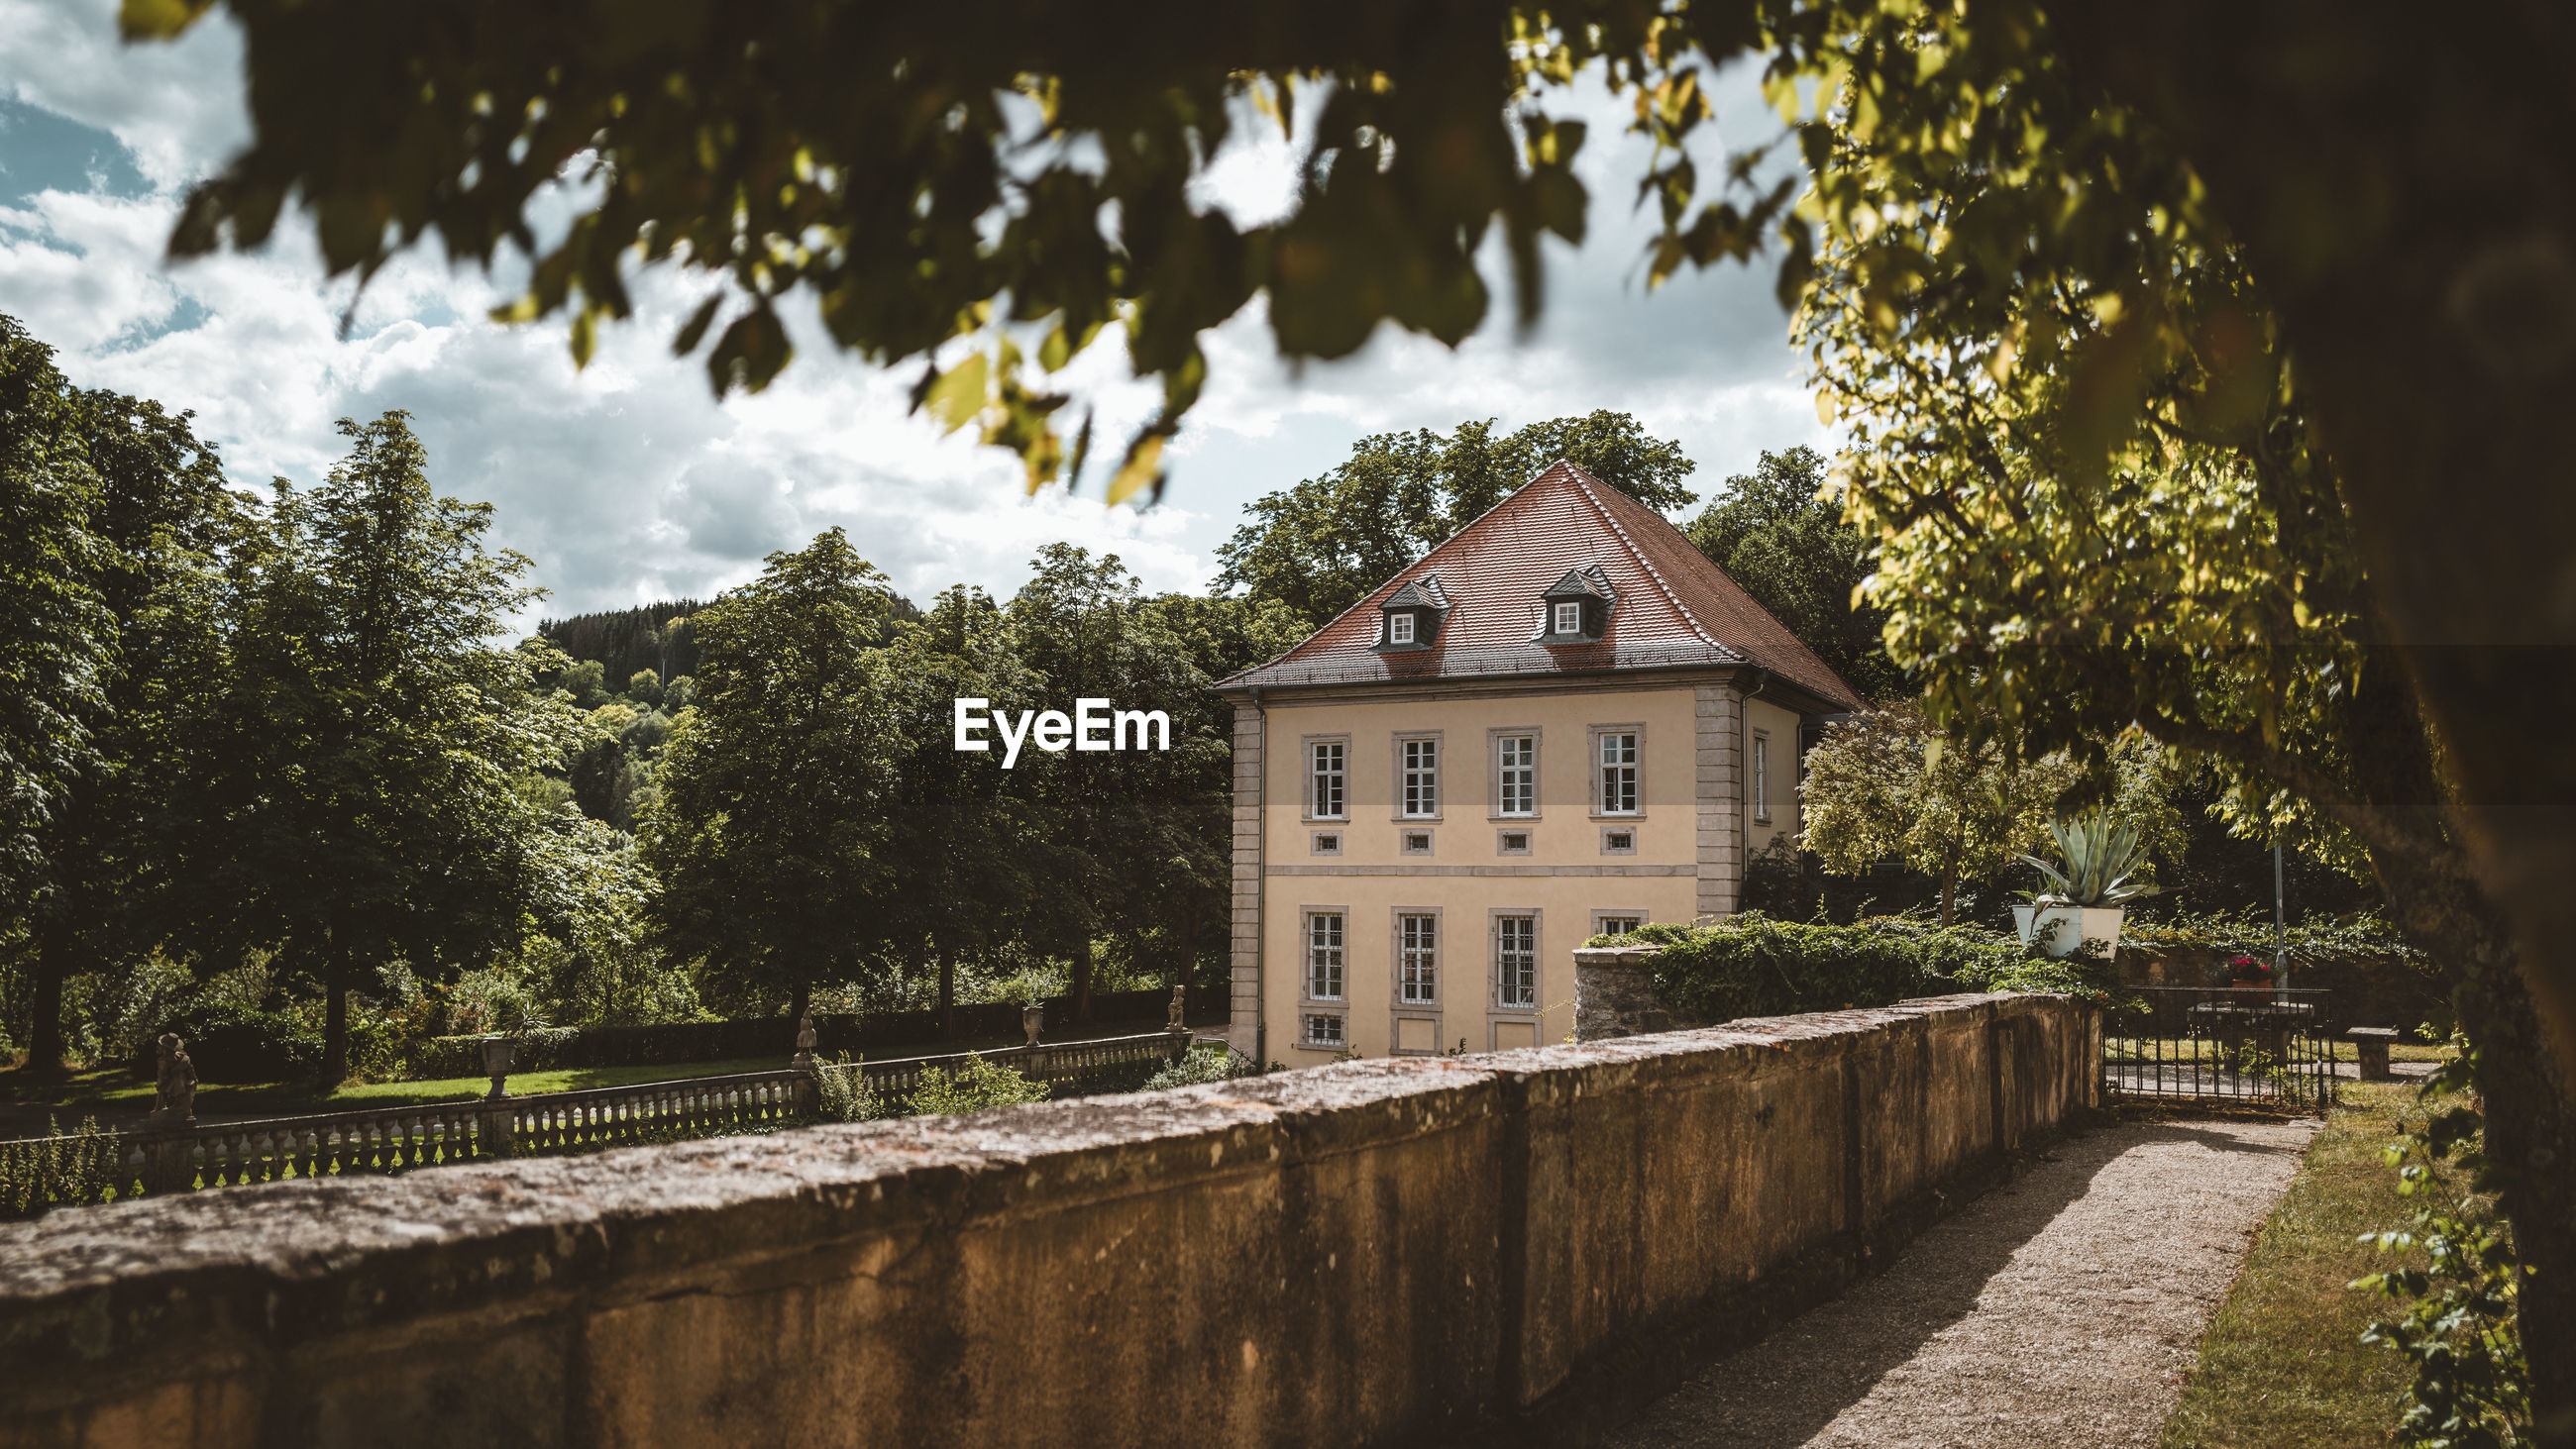 architecture, built structure, tree, building exterior, plant, building, house, nature, autumn, no people, residential district, château, sky, cloud, reflection, mansion, rural area, outdoors, home, estate, sunlight, day, history, water, waterway, the past, city